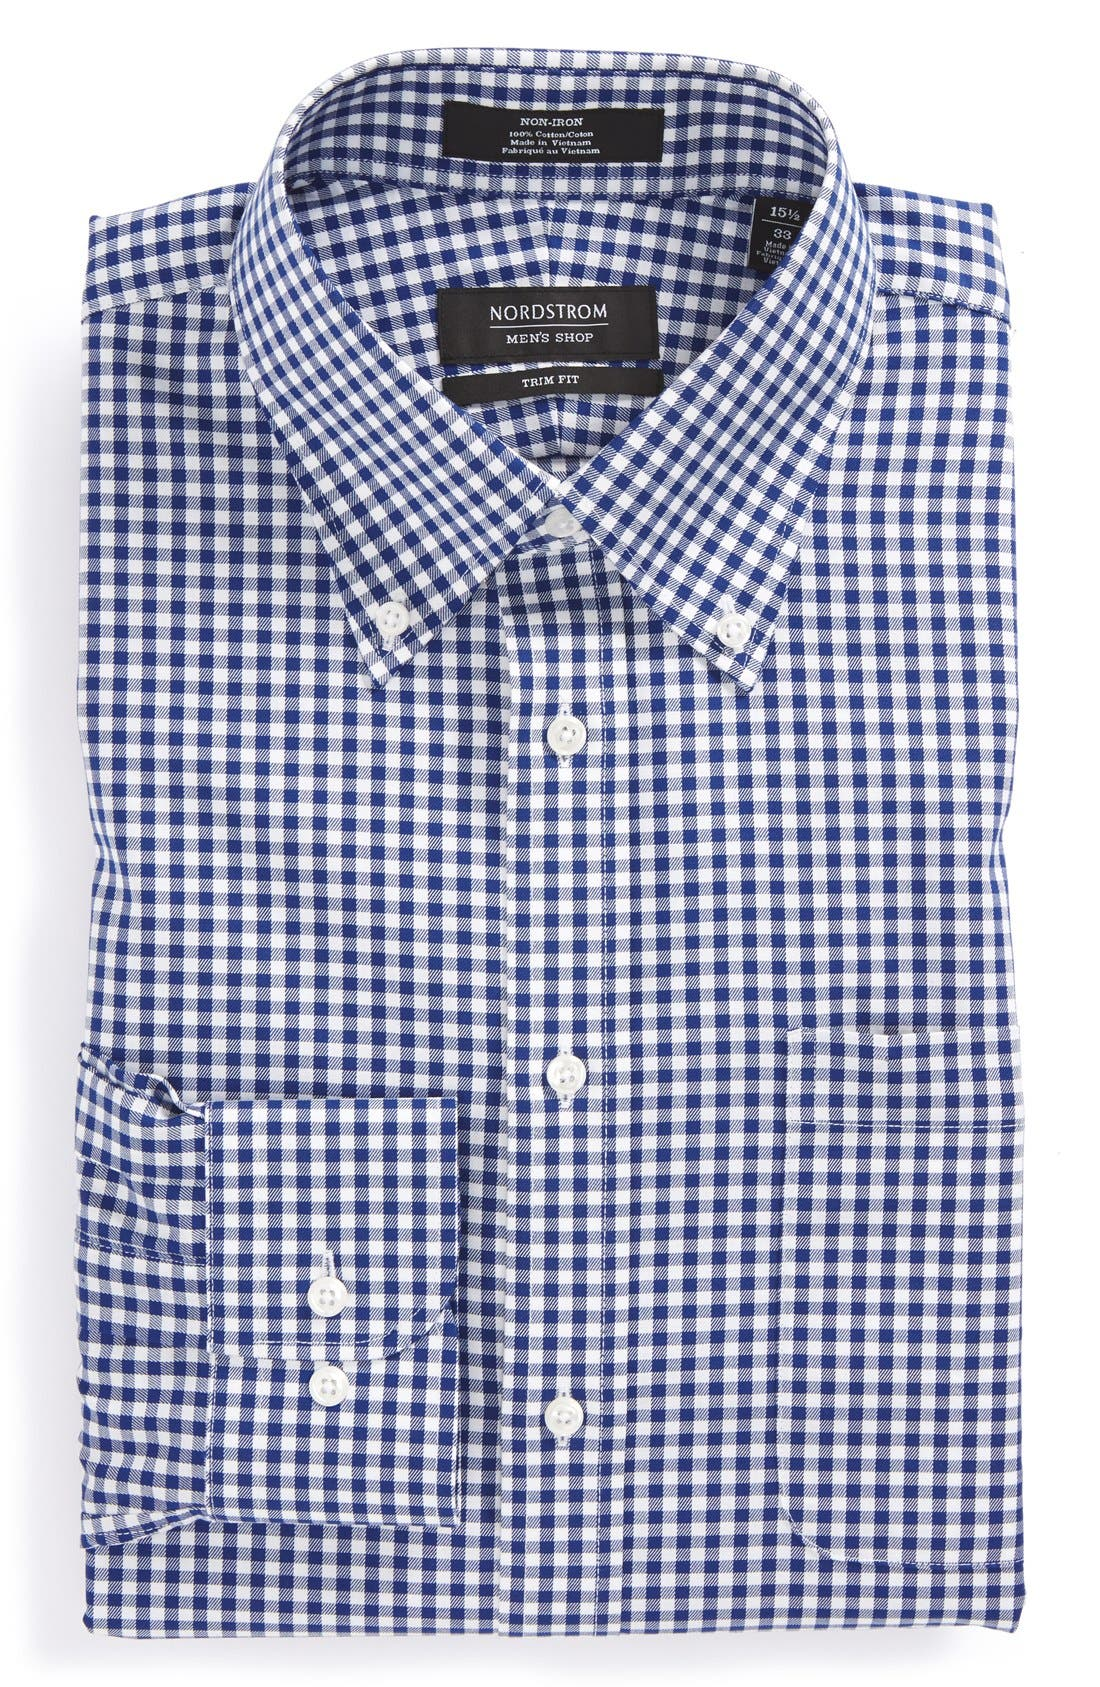 Striped, Printed & Patterned Dress Shirts for Men | Nordstrom